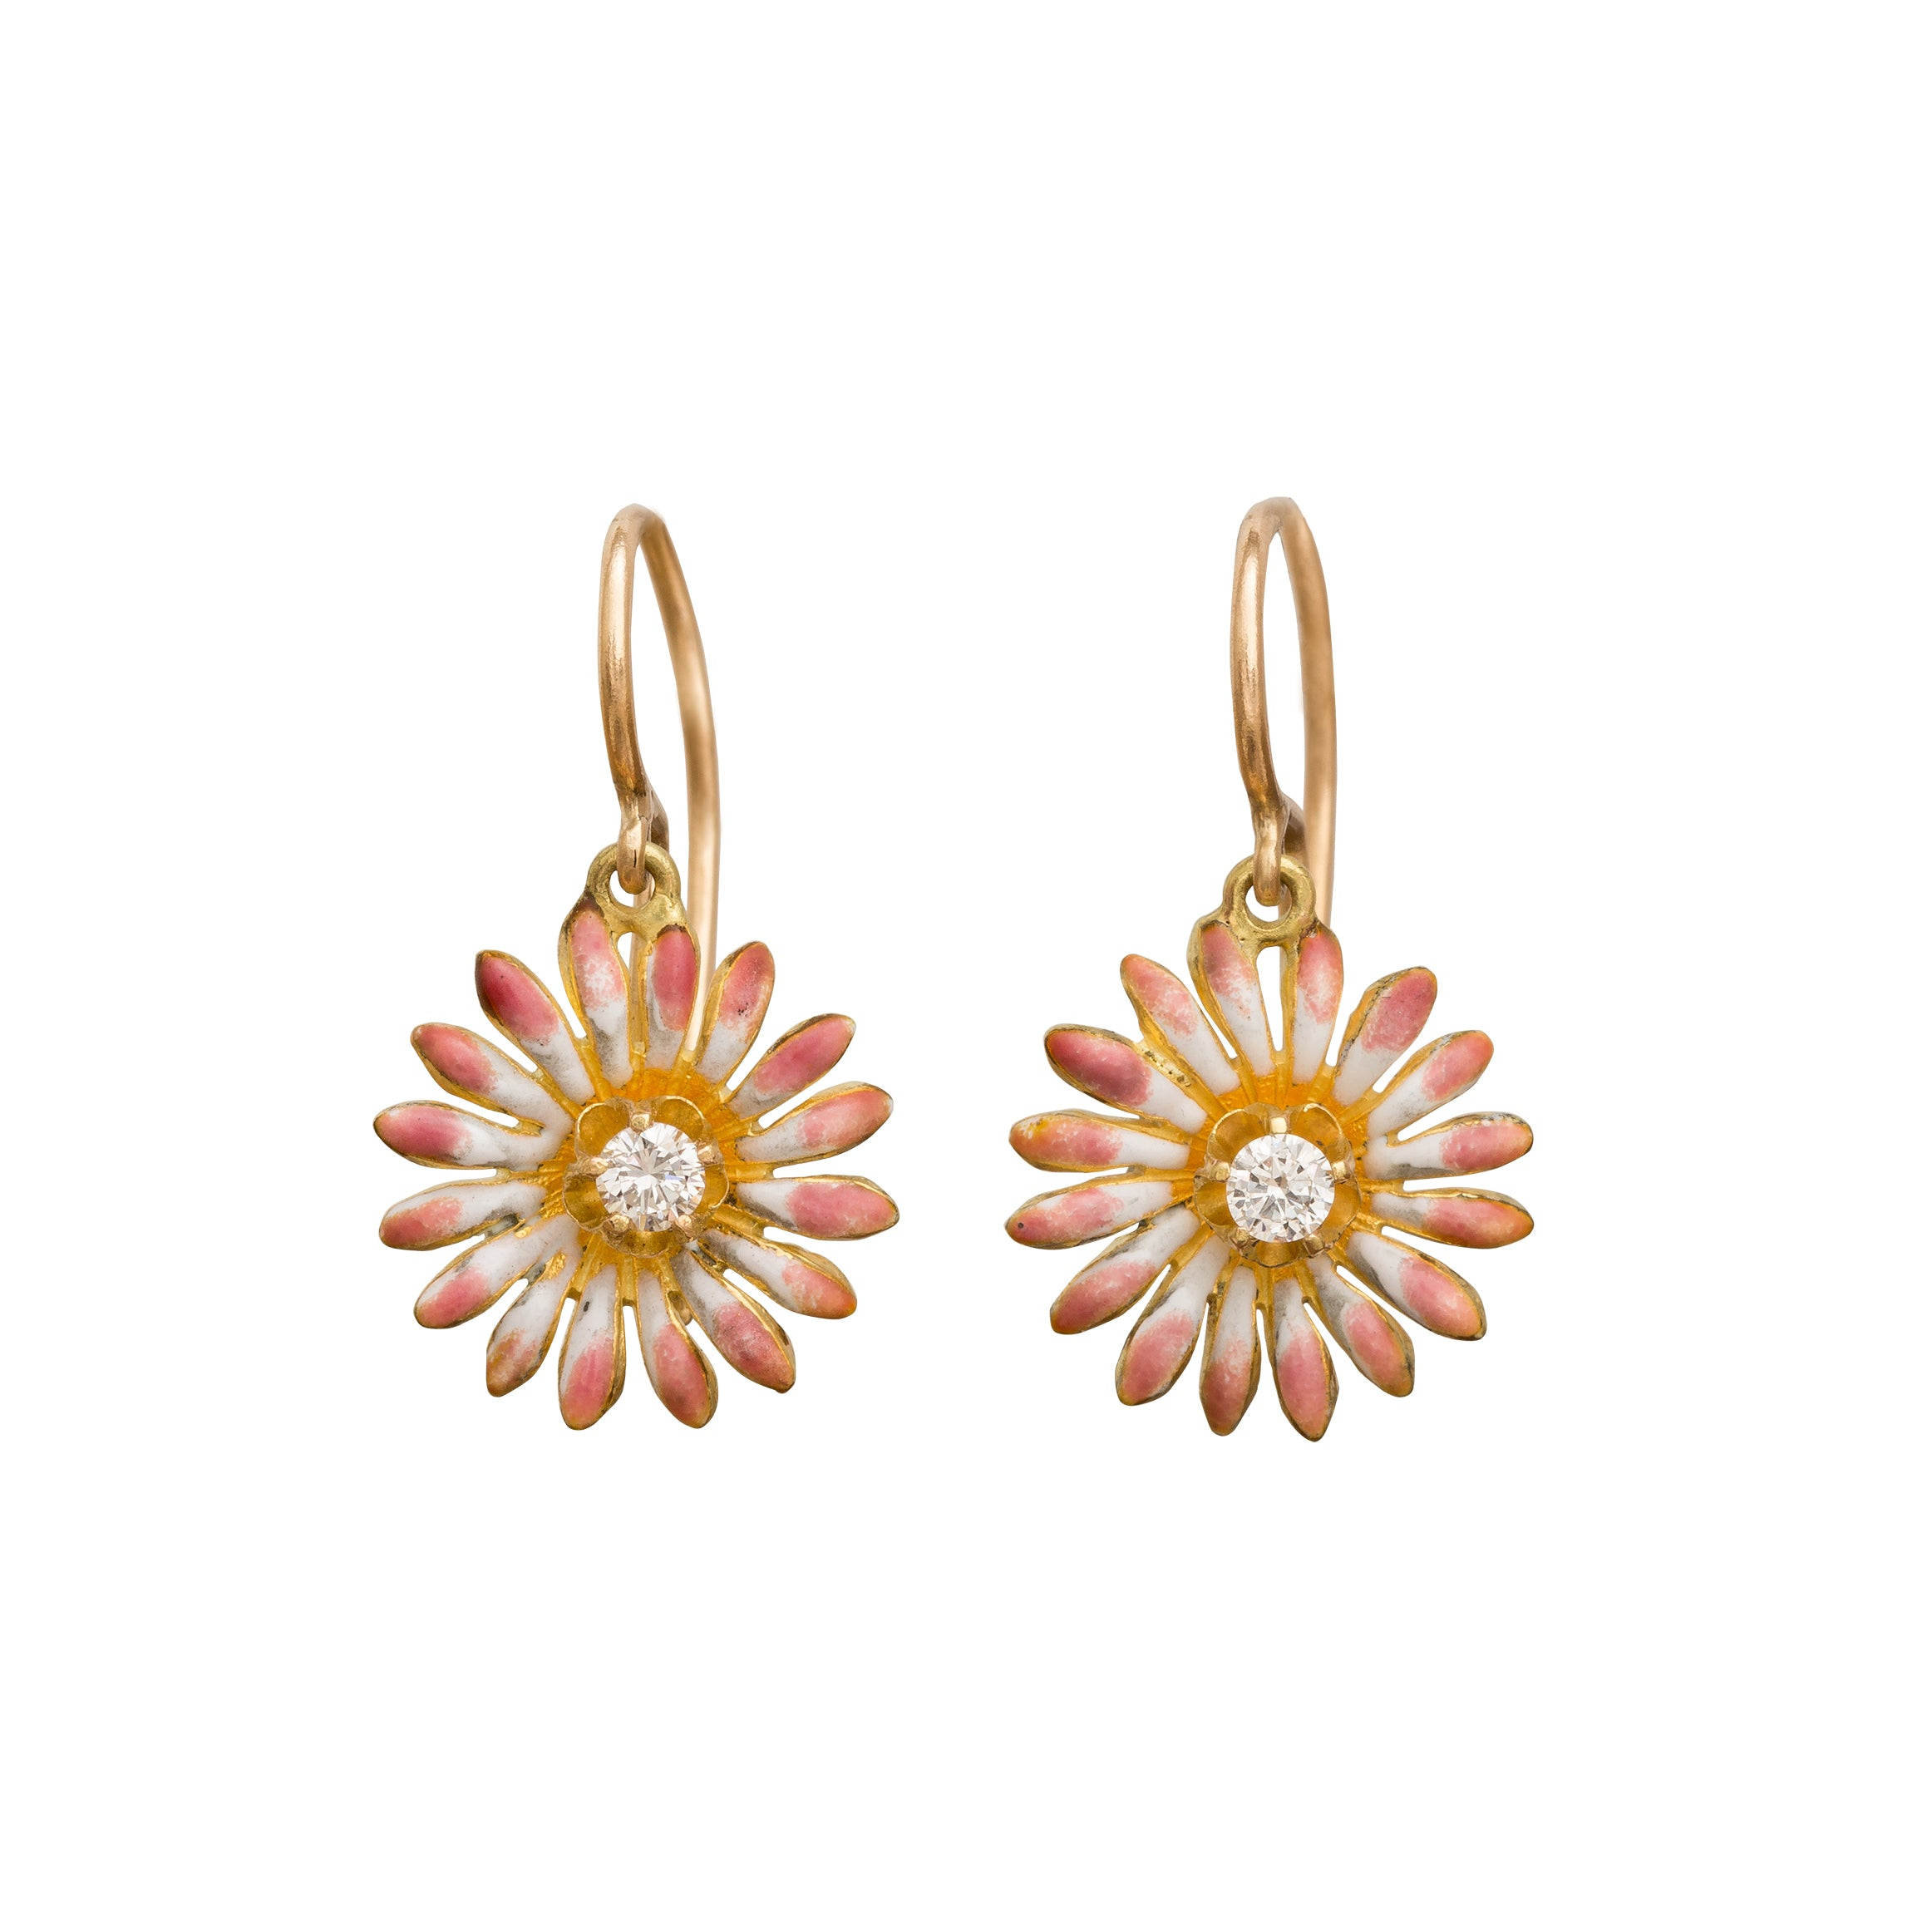 Pink Daisy Earrings by Vintage Jewelry for Broken English Jewelry